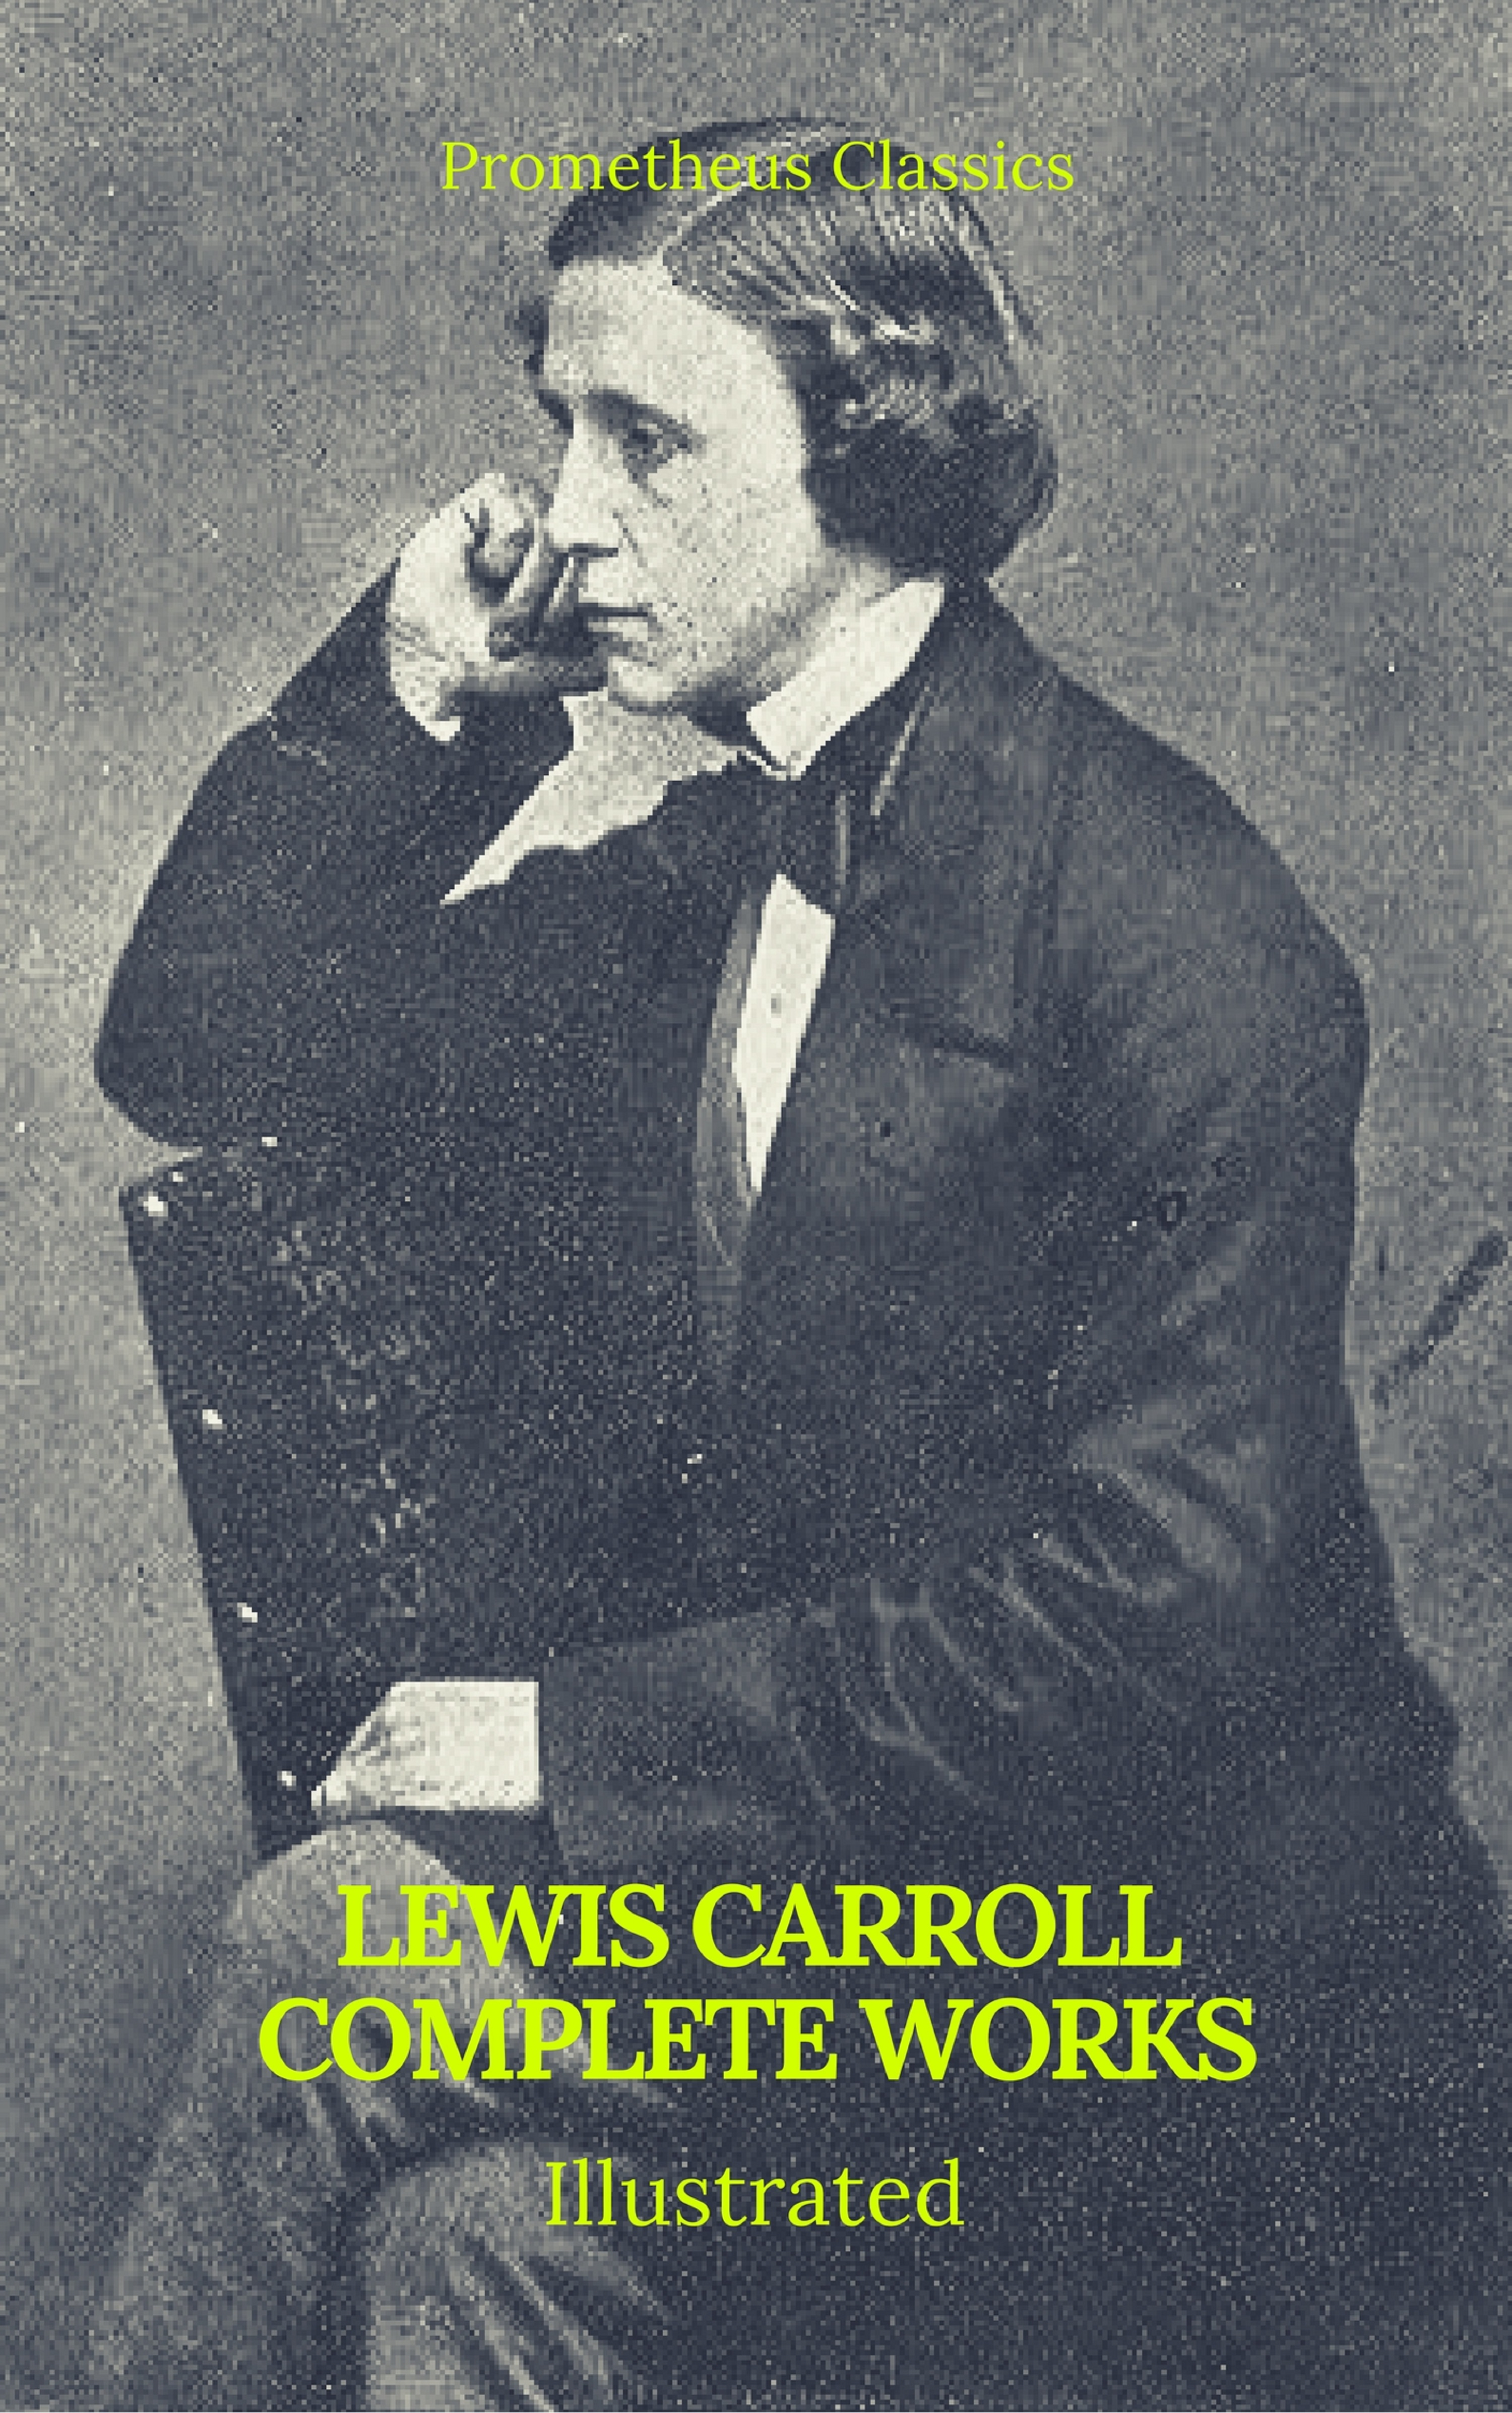 Льюис Кэрролл The Complete Works of Lewis Carroll (Best Navigation, Active TOC) (Prometheus Classics) o hooper henry the complete works of o henry short stories poems and letters best navigation active toc prometheus classics